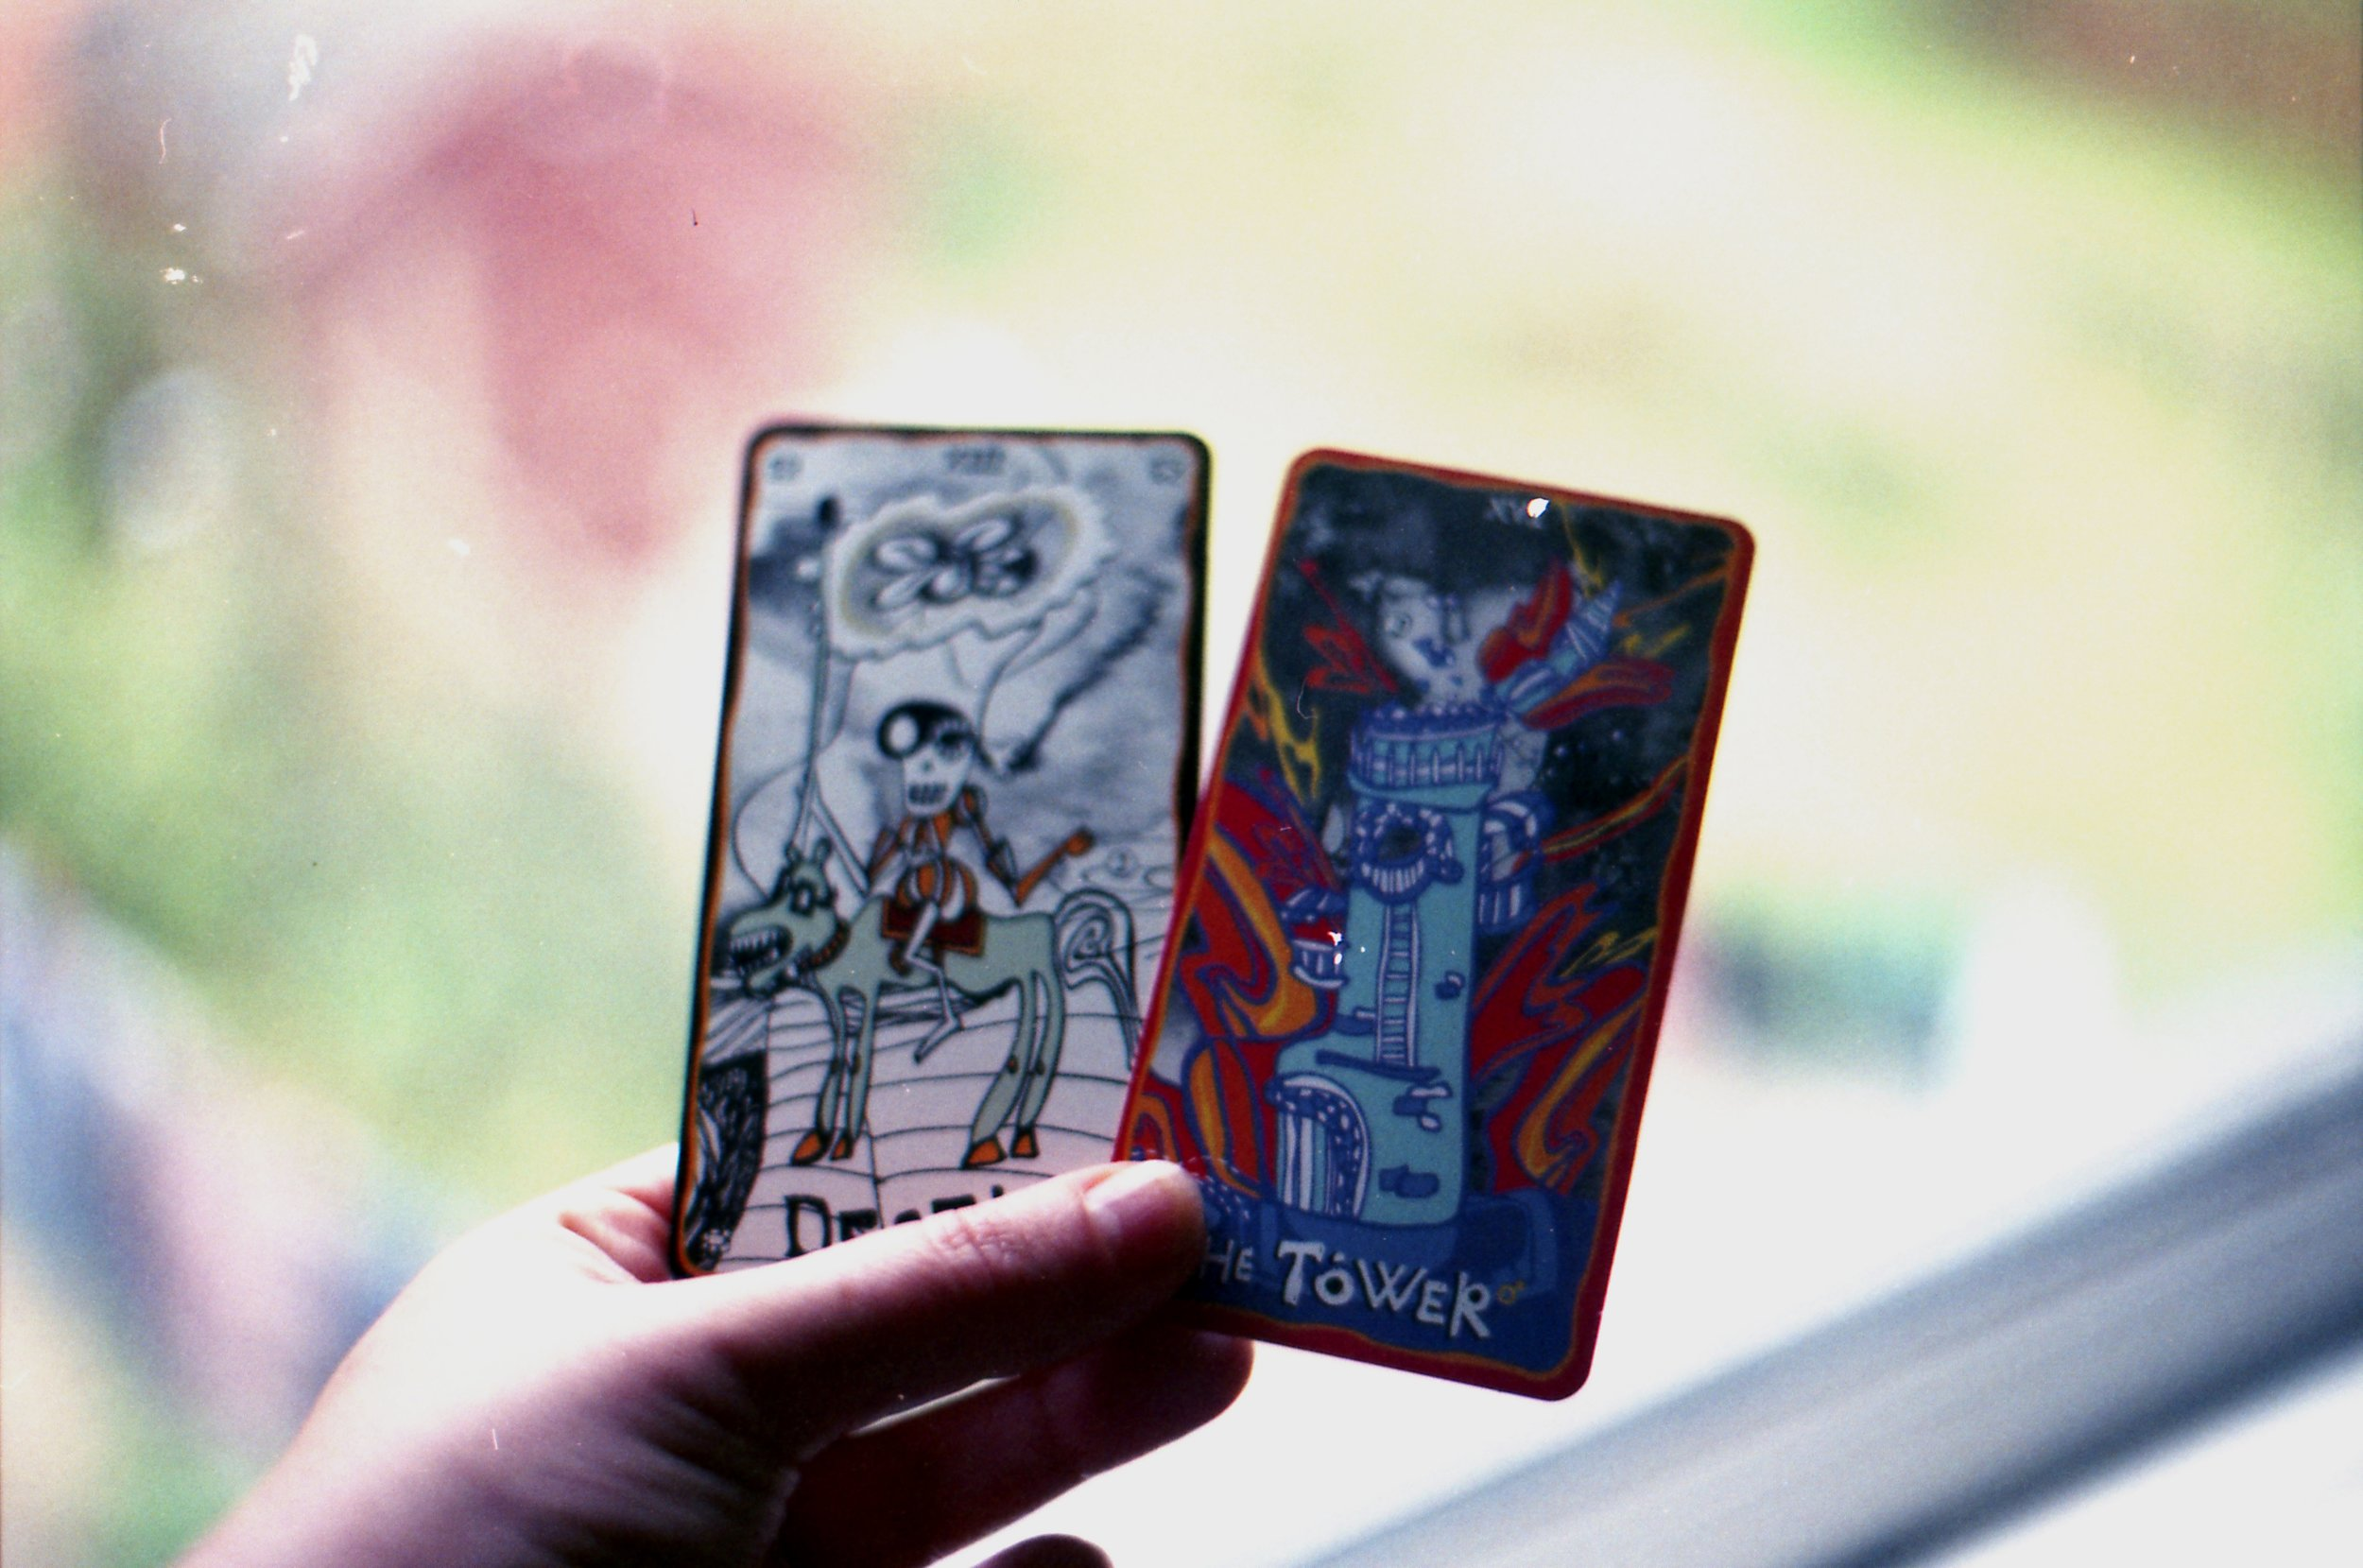 247/366 - When you get the death and tower card in one reading - yikes. It quickly made sense after a couple of days. If they don't straight away then with time, they usually do...